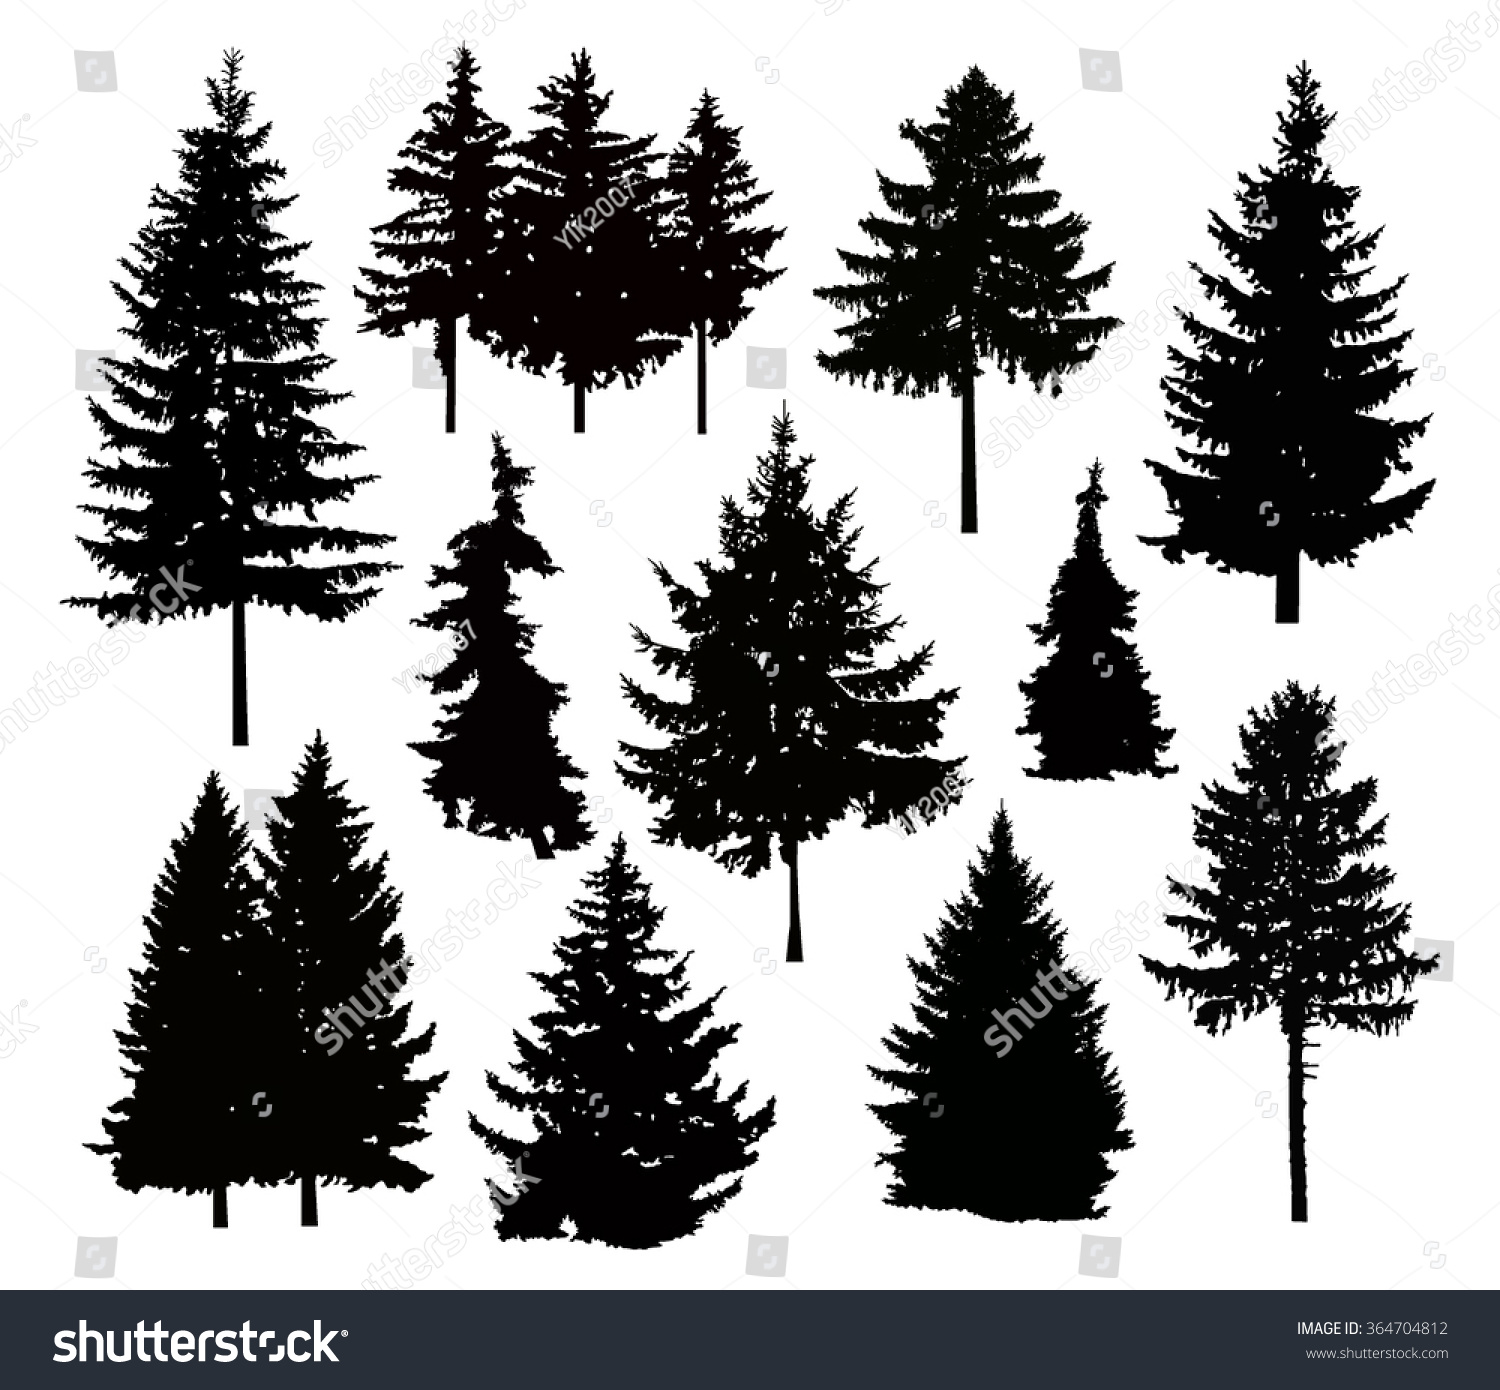 vector silhouette different pine trees can stock vector vector pine trees free vector pine tree images